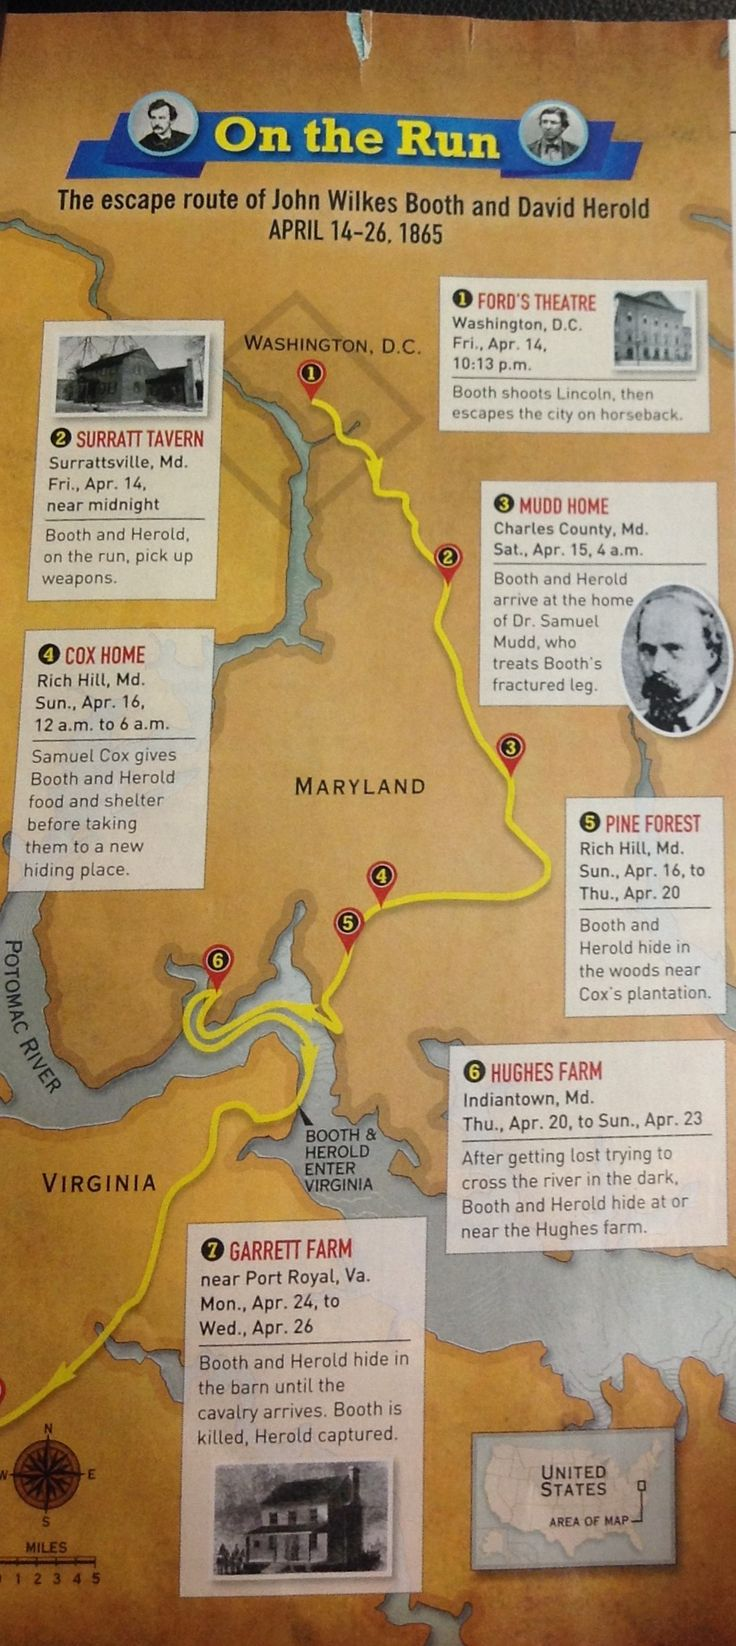 Escape route of John Wilkes booth and